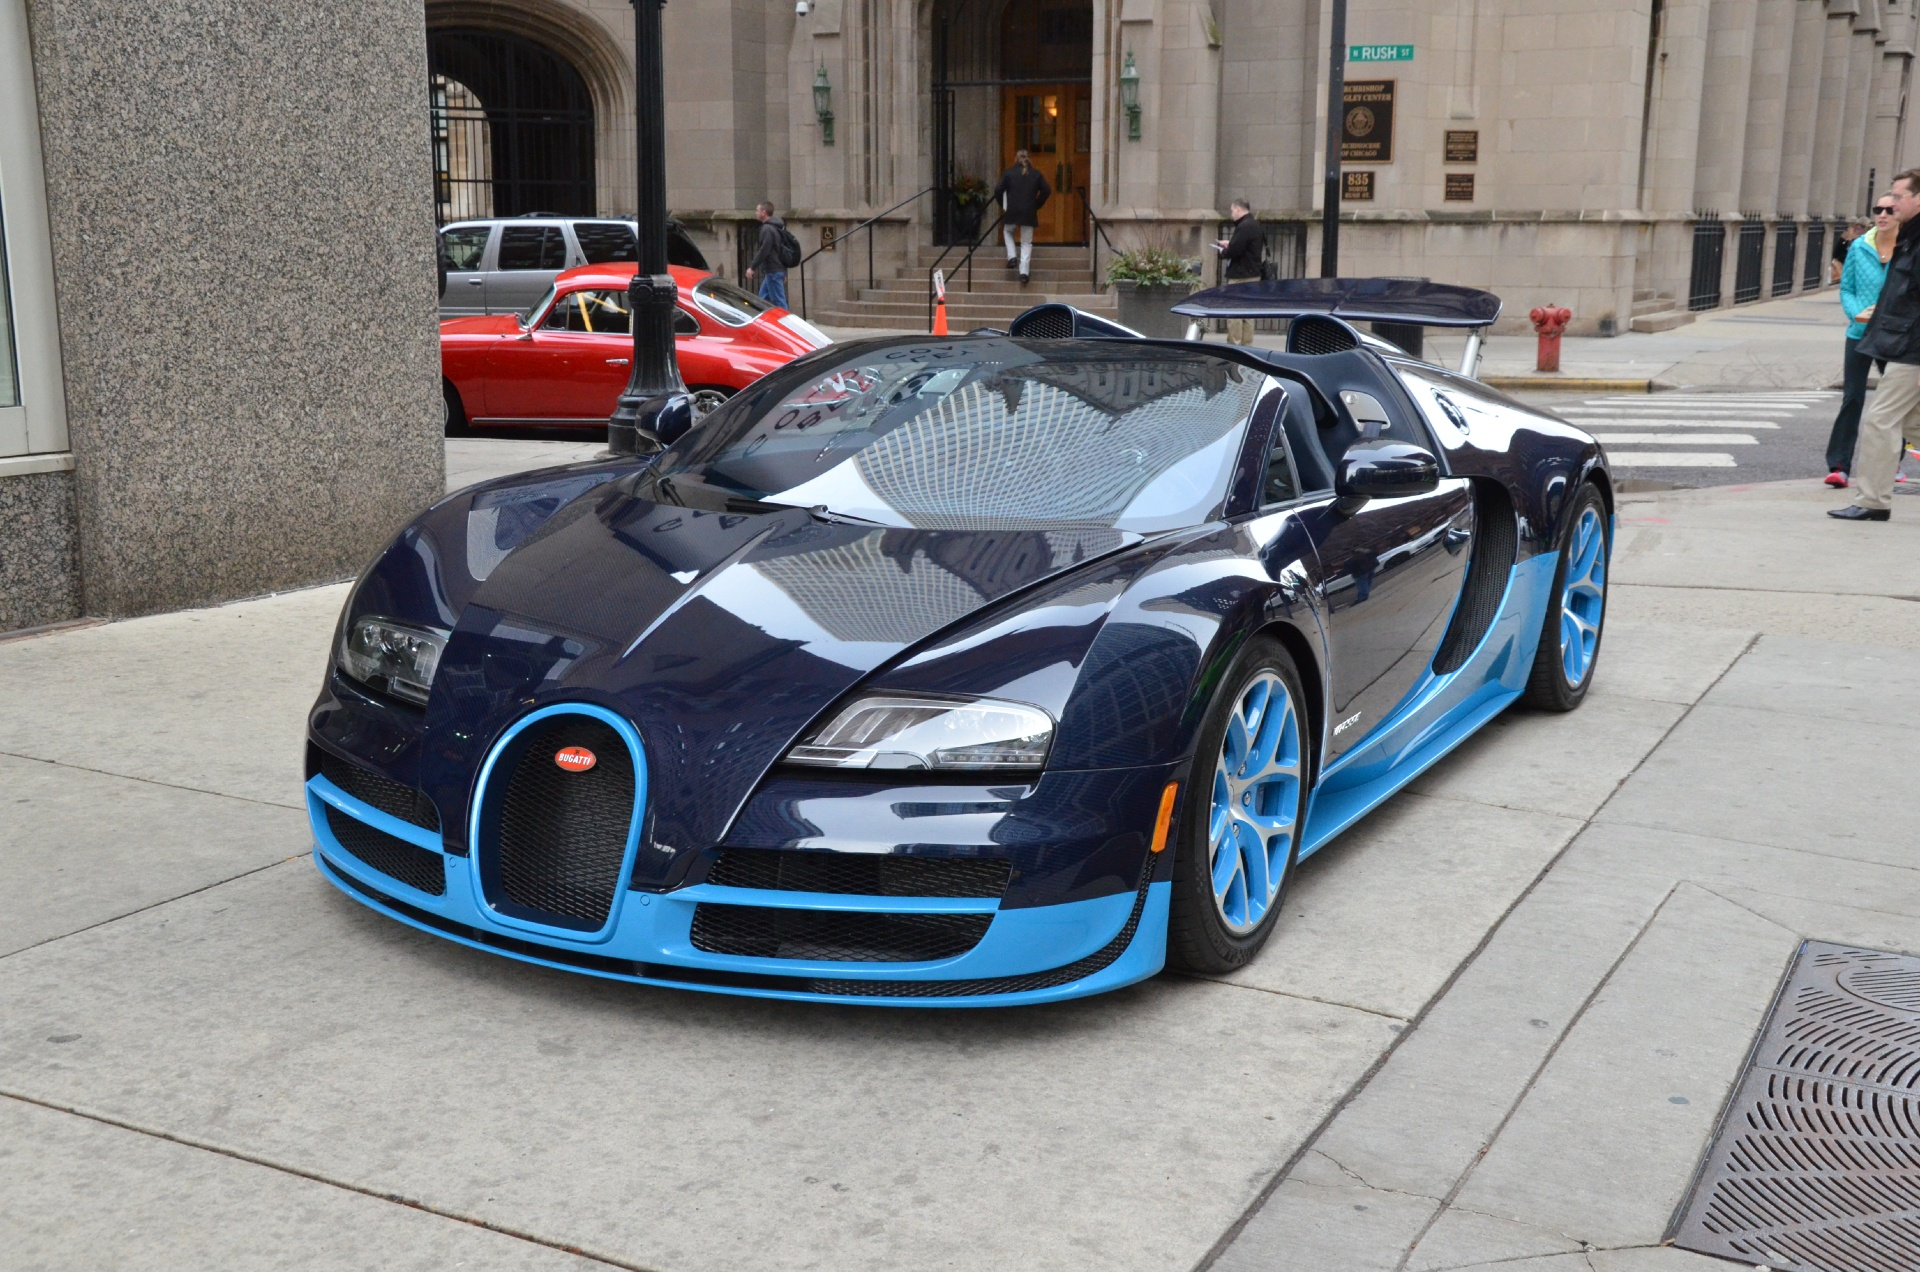 2014 bugatti veyron vitesse used bentley used rolls royce used lamborgh. Black Bedroom Furniture Sets. Home Design Ideas